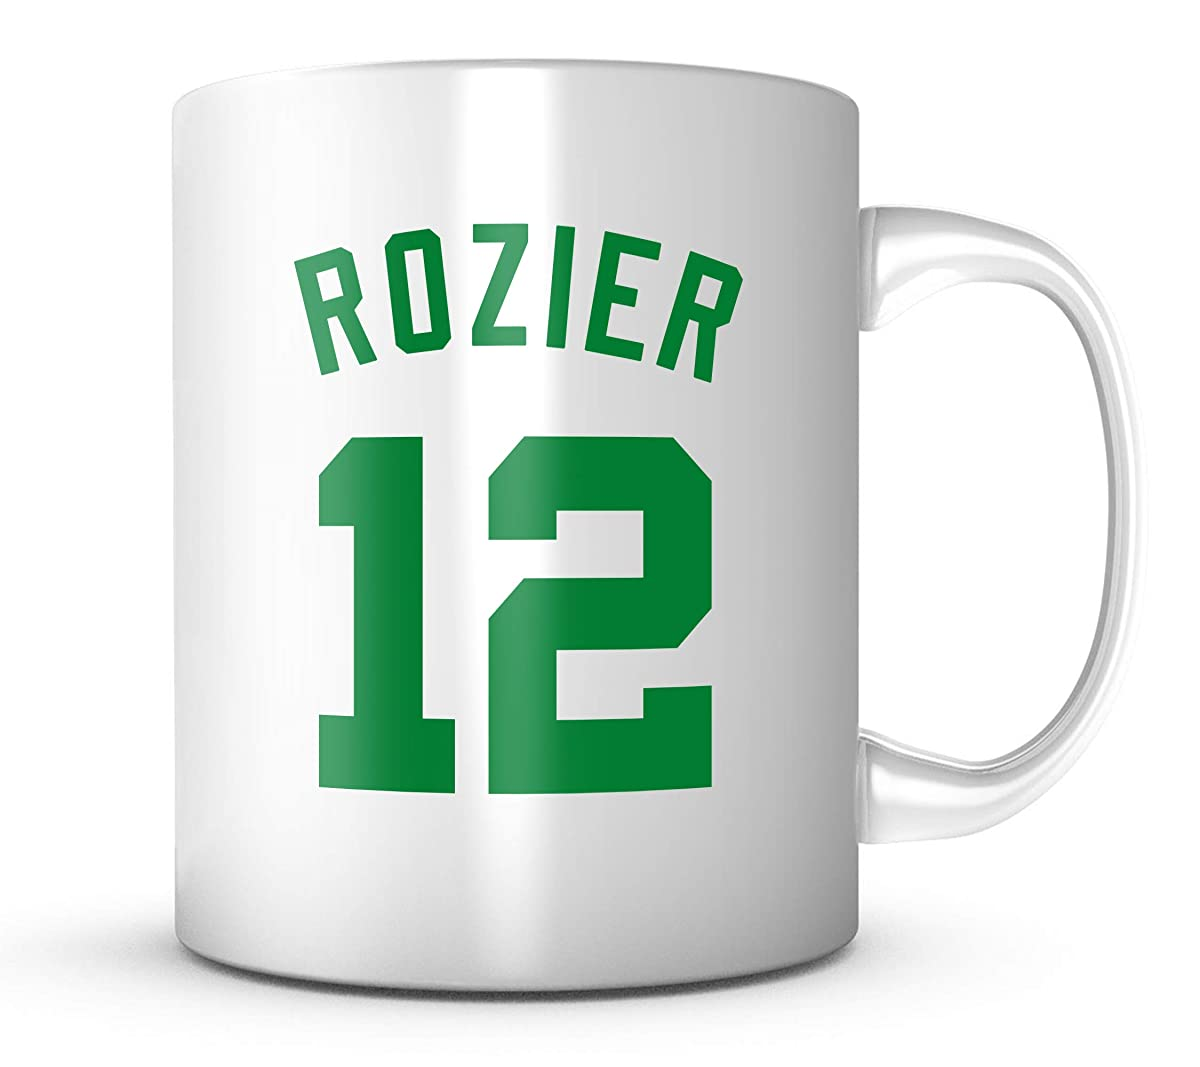 Terry Rozier #12 Mug - Jersey Number Green/White Coffee Cup